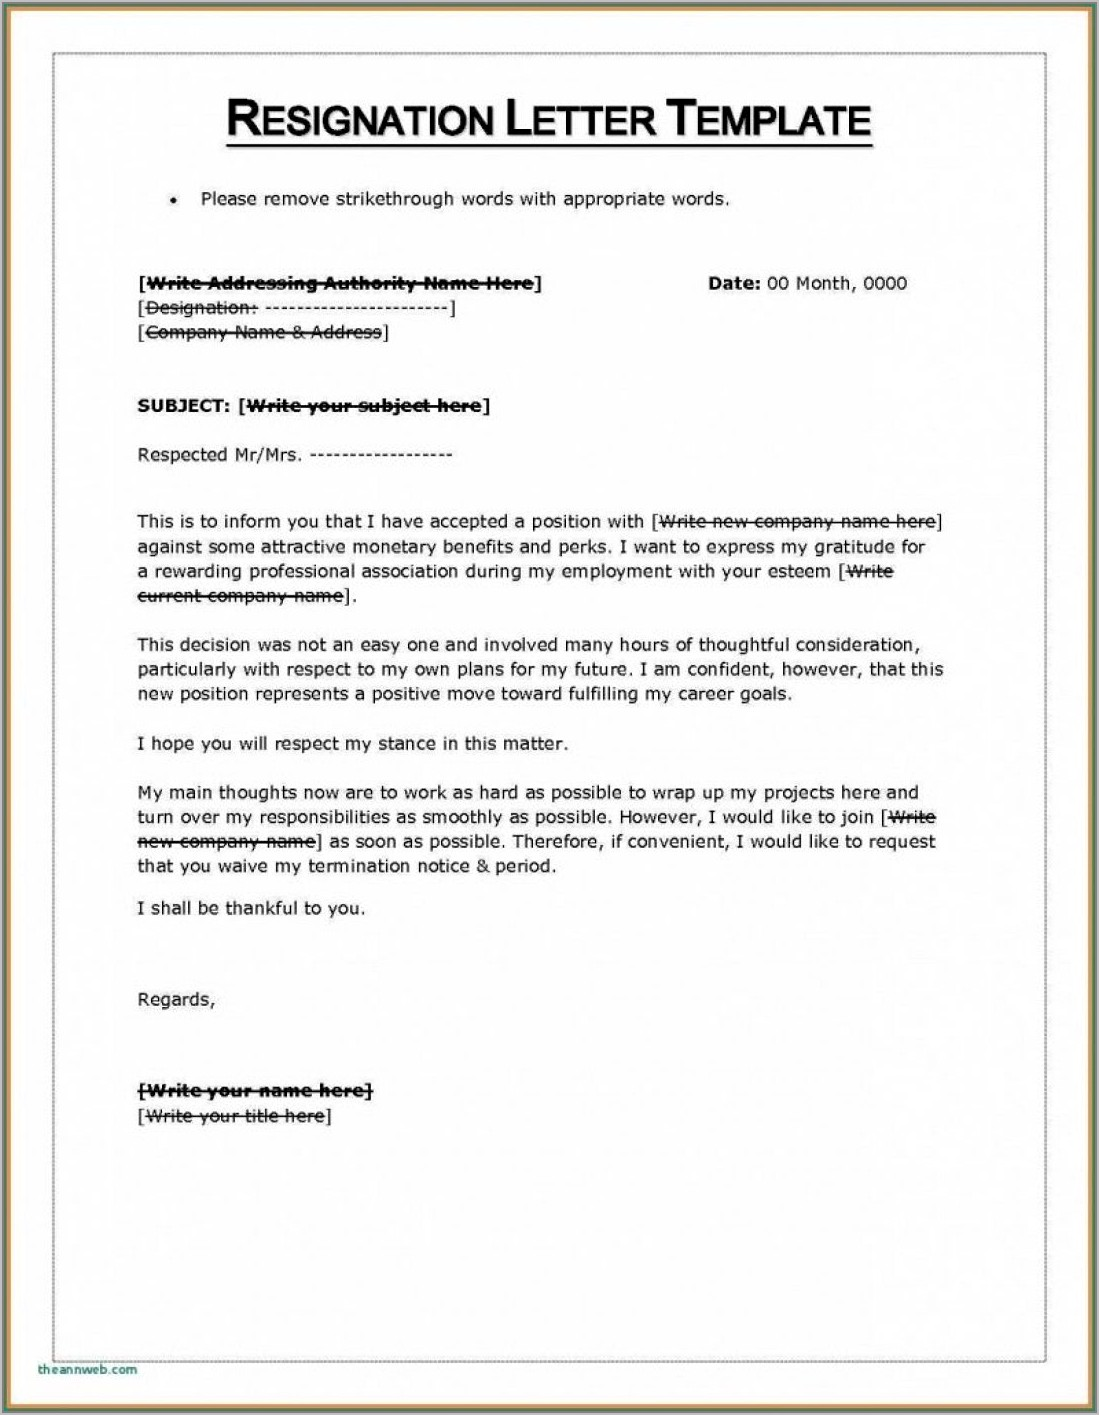 Formal Resignation Letter Template Singapore